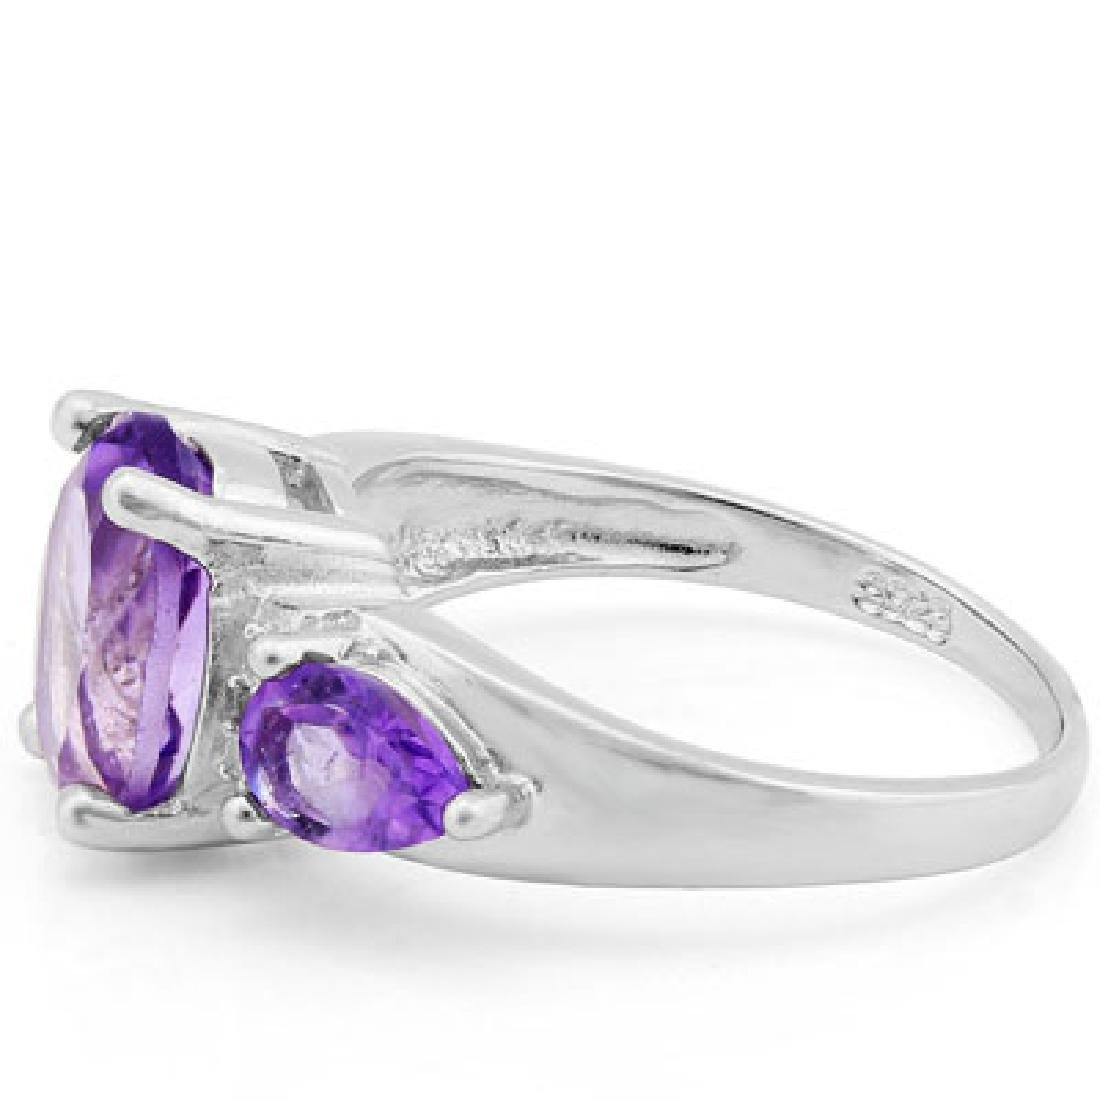 925 STERLING SILVER RING WITH AMETHYST & AMETHYST - 2